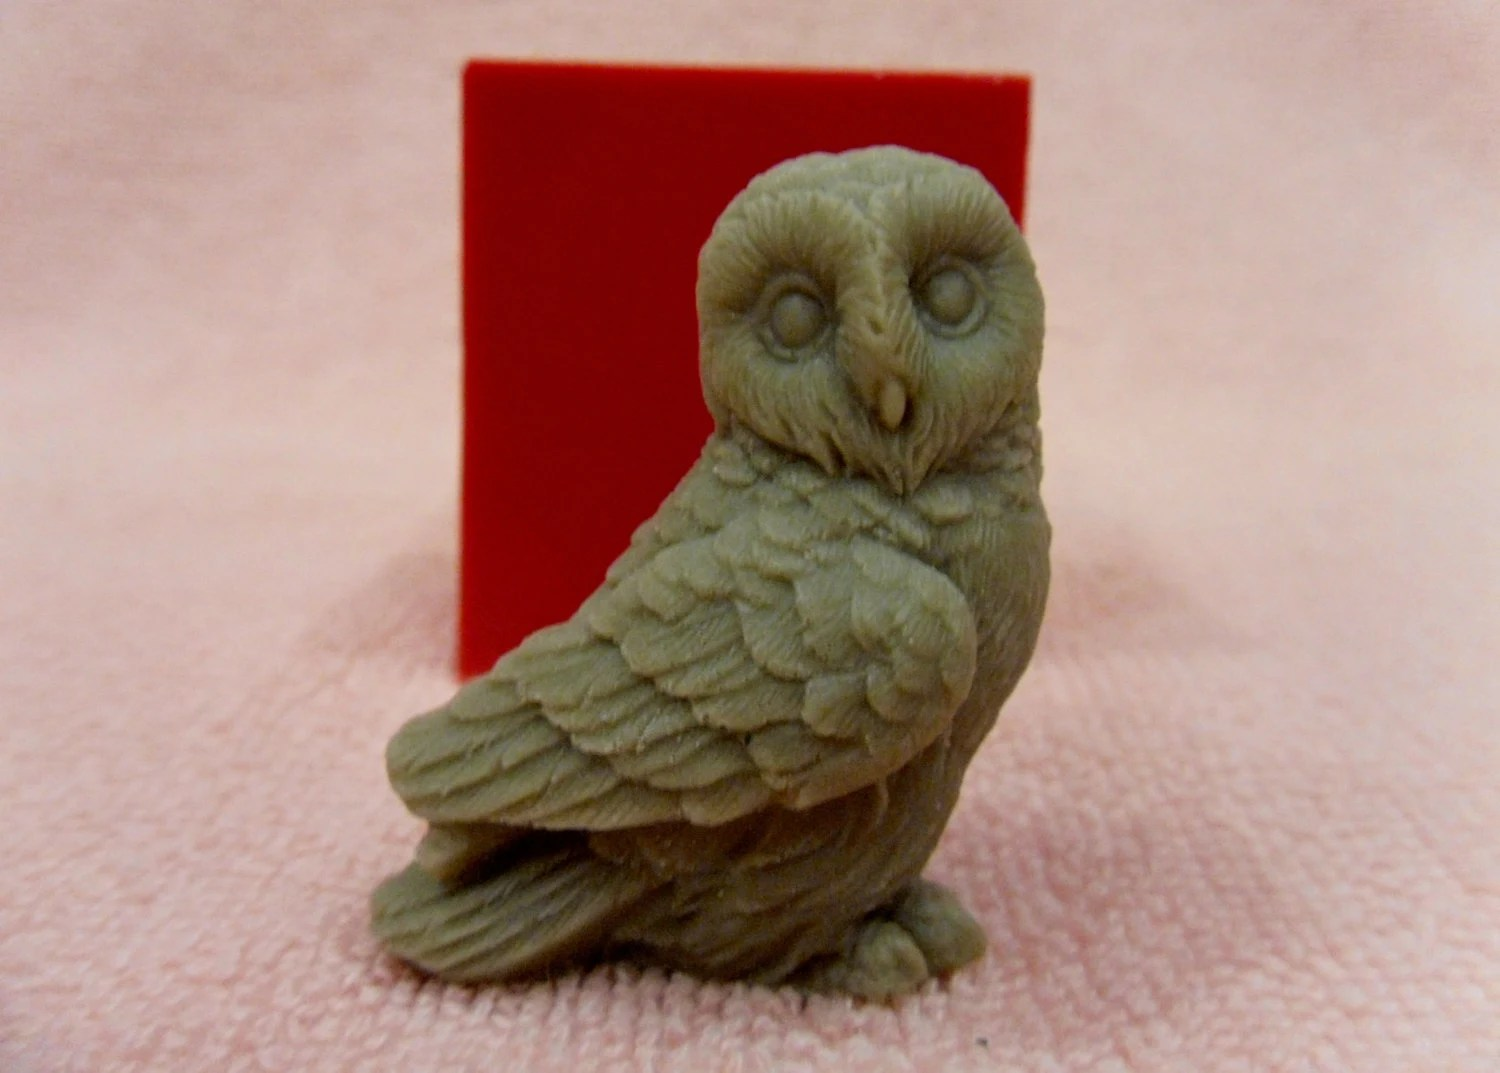 Silicone Soap Molds Australia Owl Silicone Mold For Soap And Candles Making Mould Molds